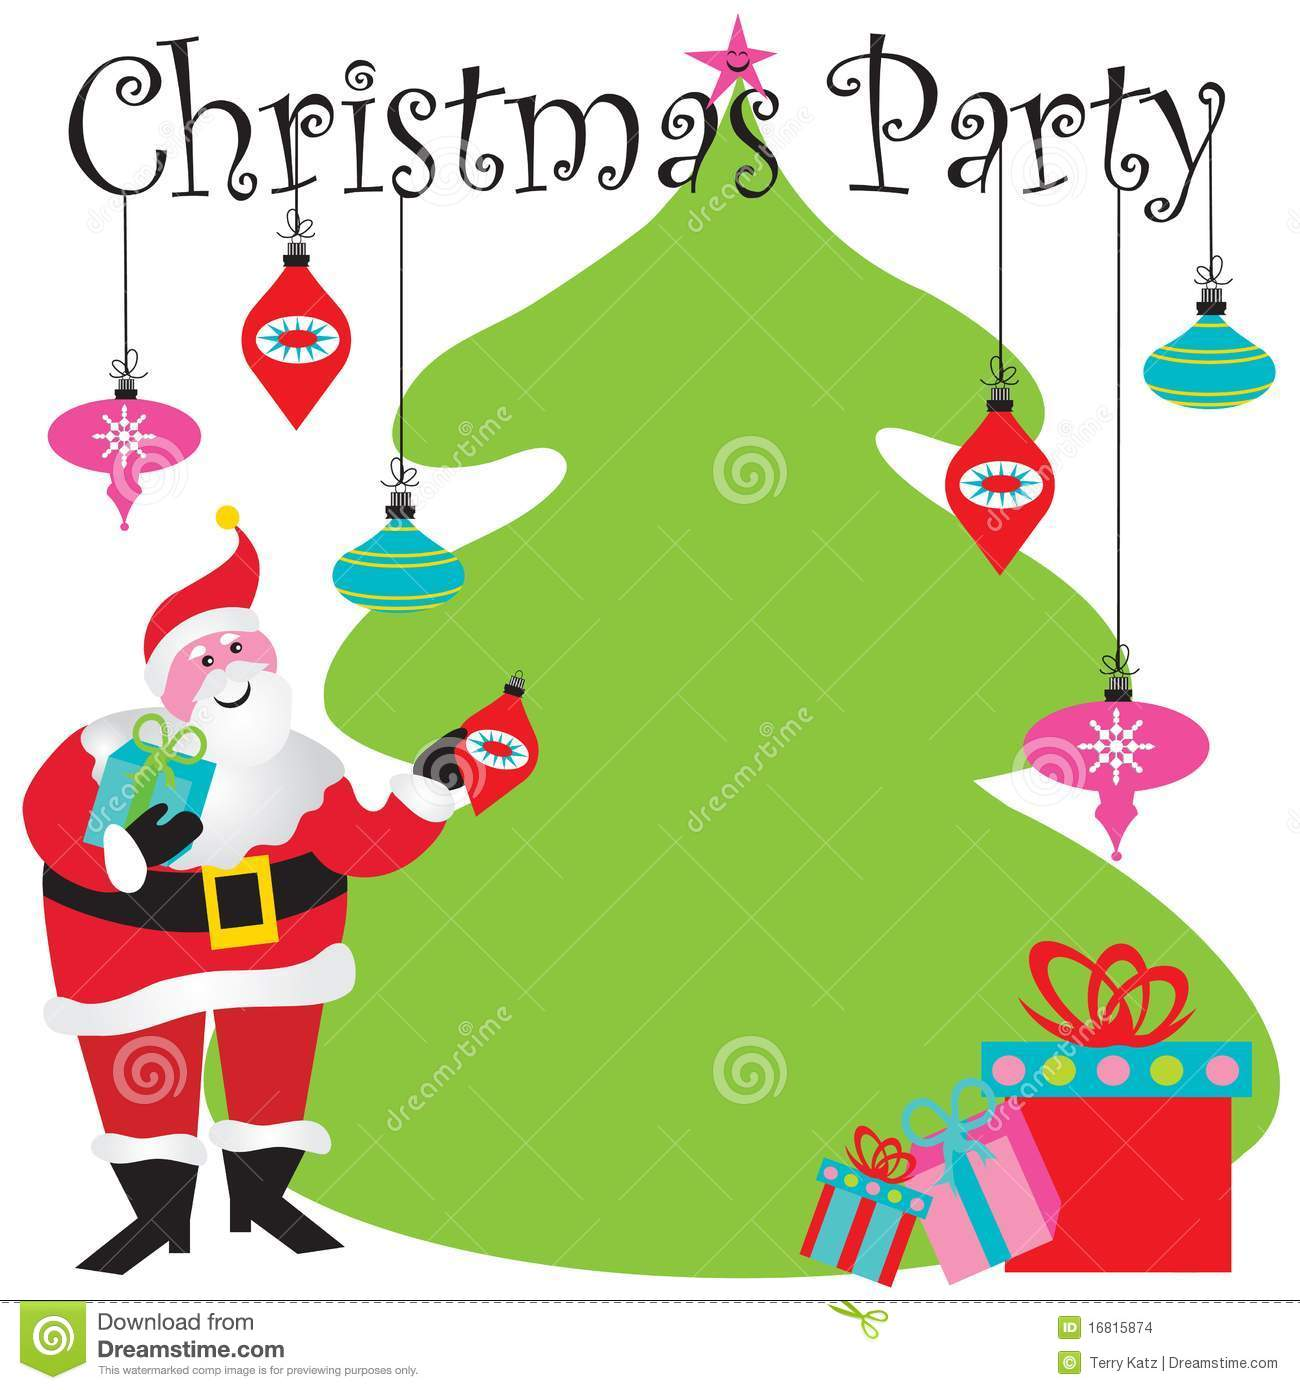 christmas party images invitations Minimfagencyco